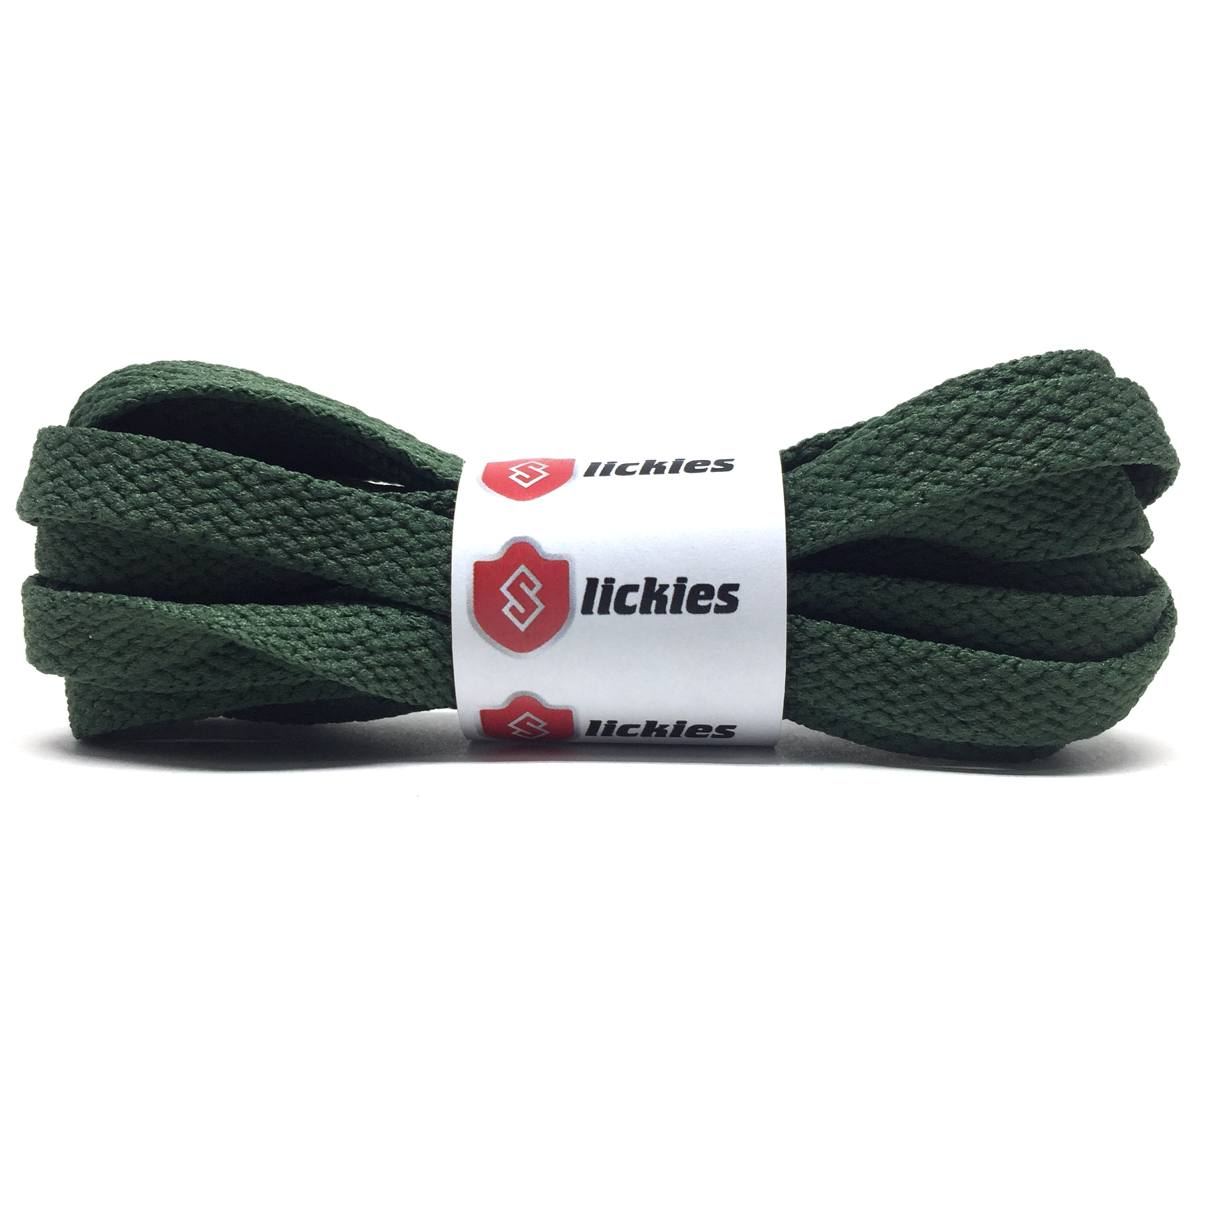 Flat Thin - BASICS Flat Thin Laces - Olive Green